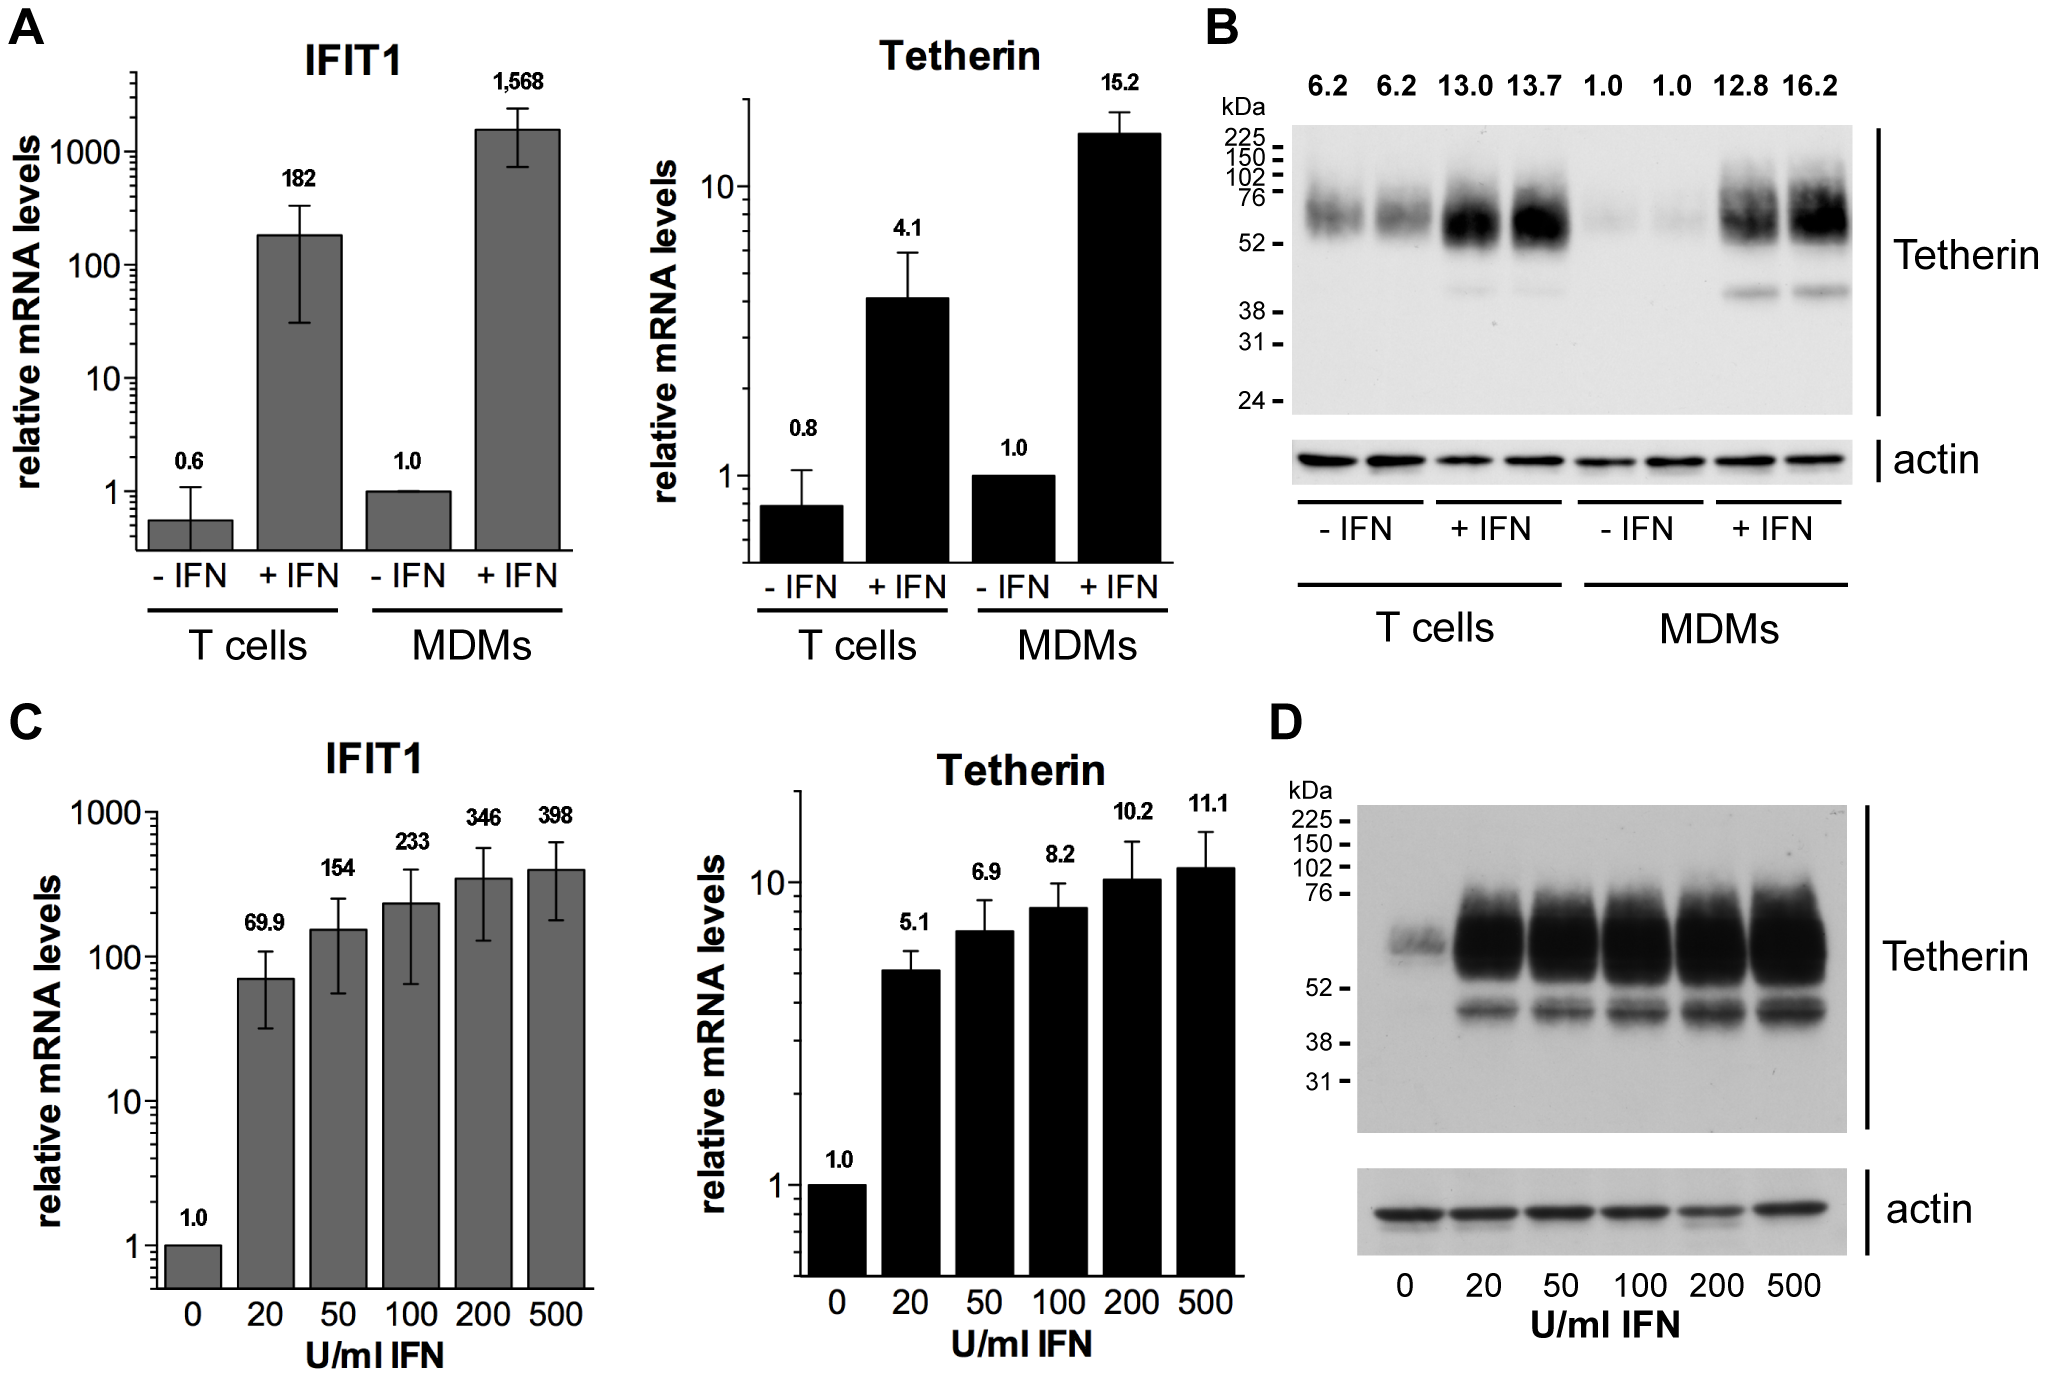 Type I interferons upregulate Tetherin expression in primary macrophages.